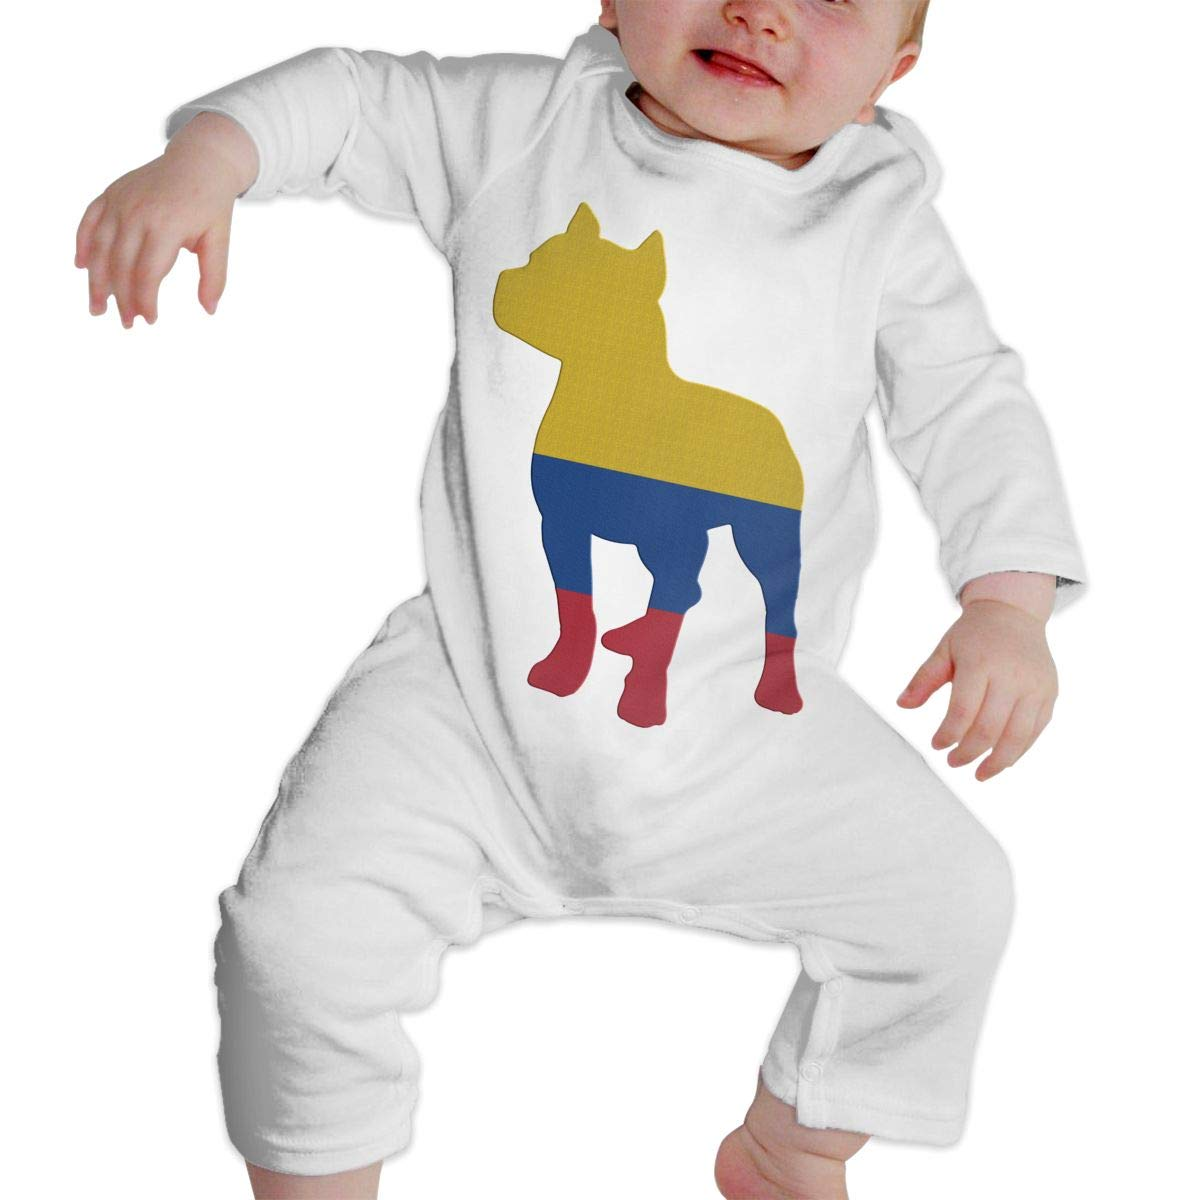 A1BY-5US Baby Infant Toddler Cotton Long Sleeve Patriotic Pitbull Colombia Flag Romper Bodysuit One-Piece Romper Clothes